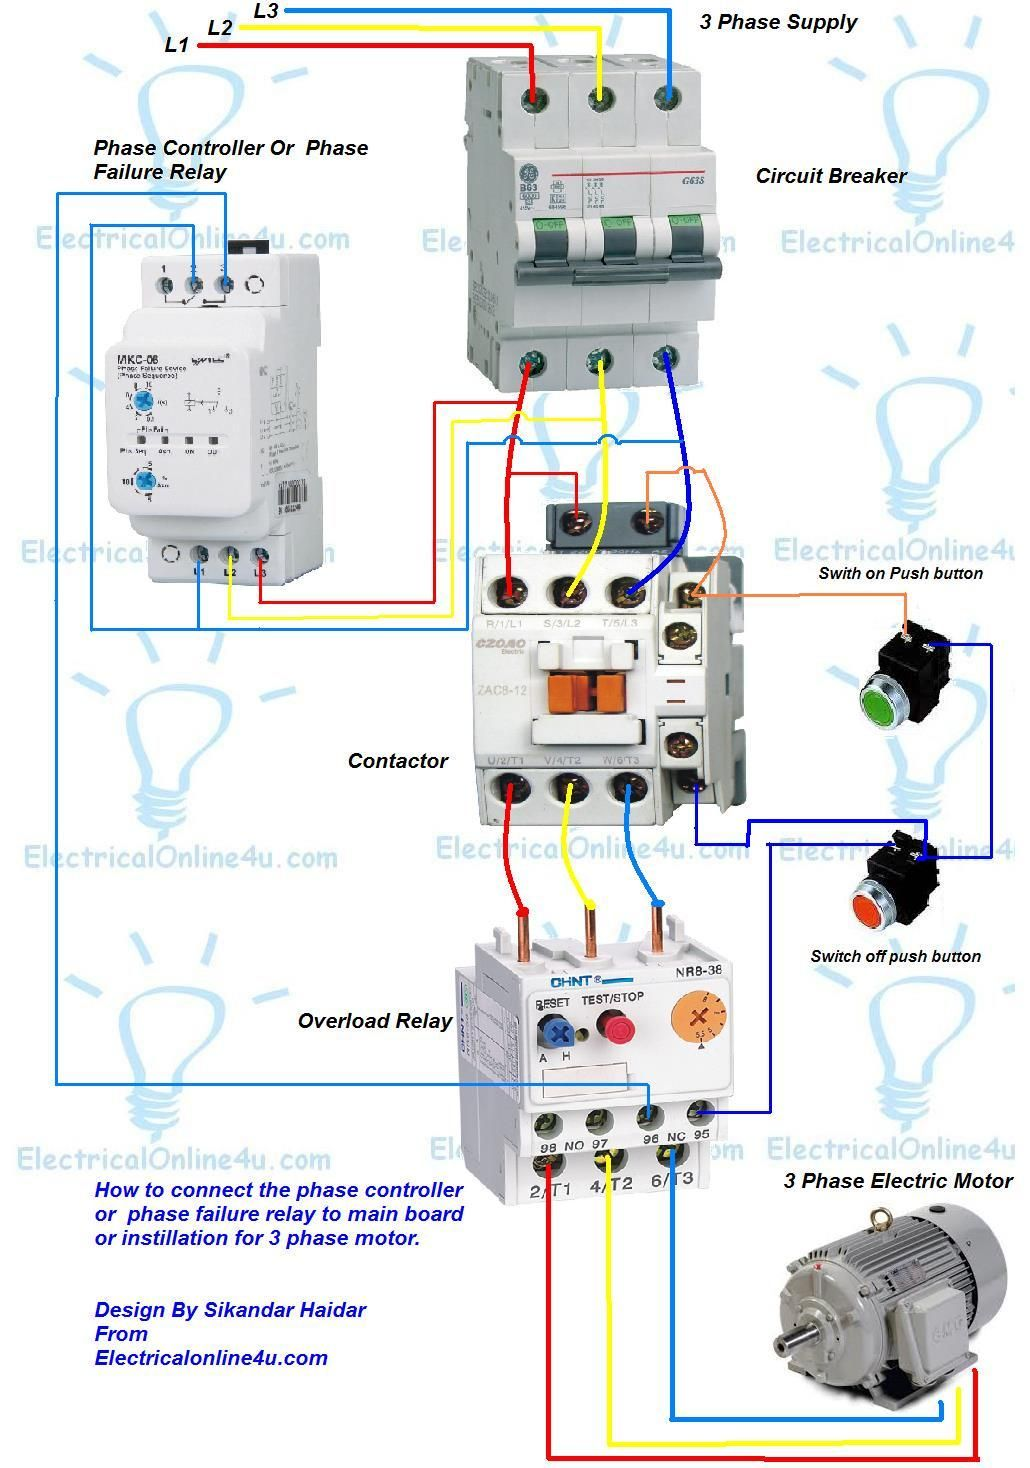 small resolution of phase controller wiring phase failure relay diagram di on line 3 phase water pump control panel wiring diagram 3 phase control panel wiring